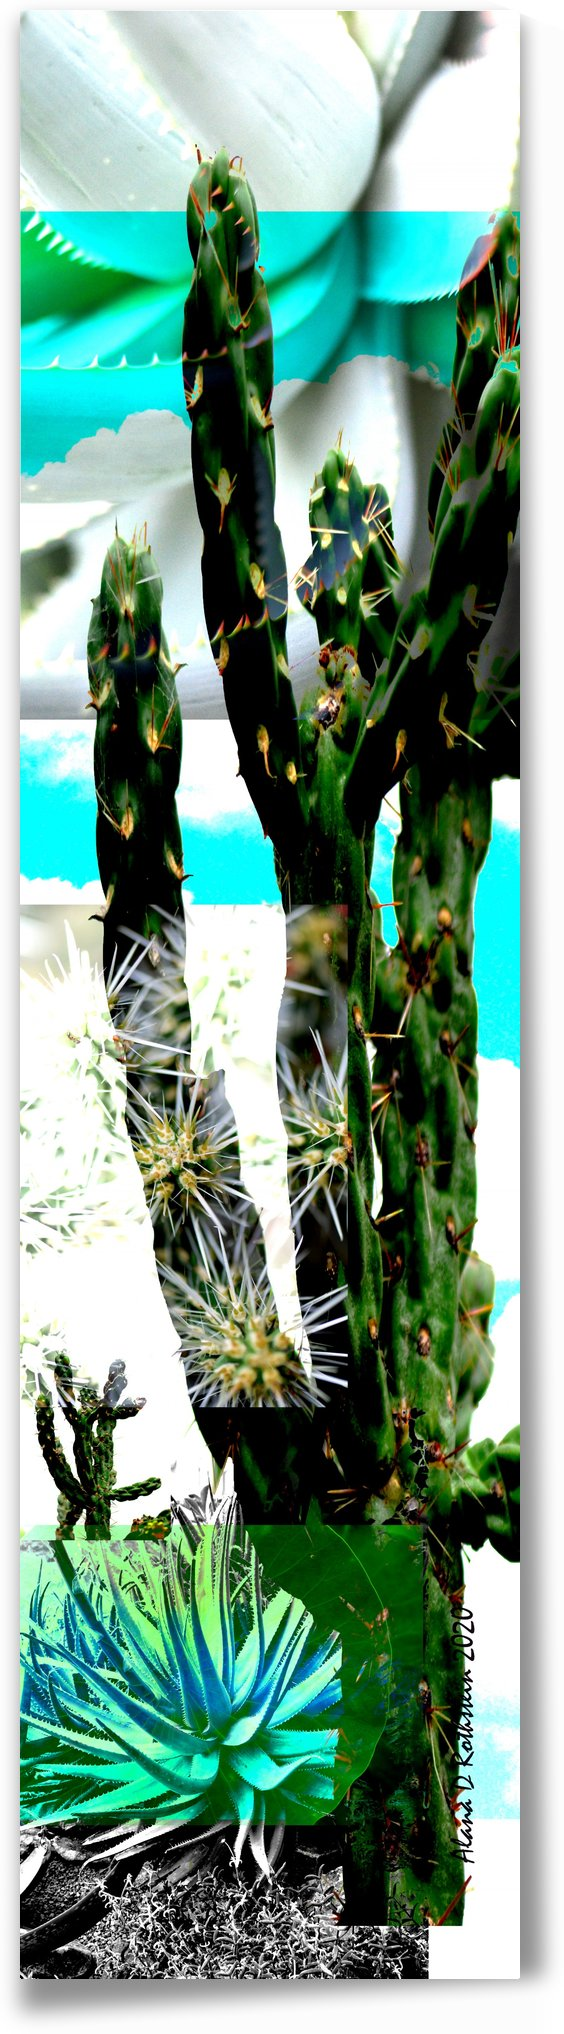 Cactus One by Alana Rothstein